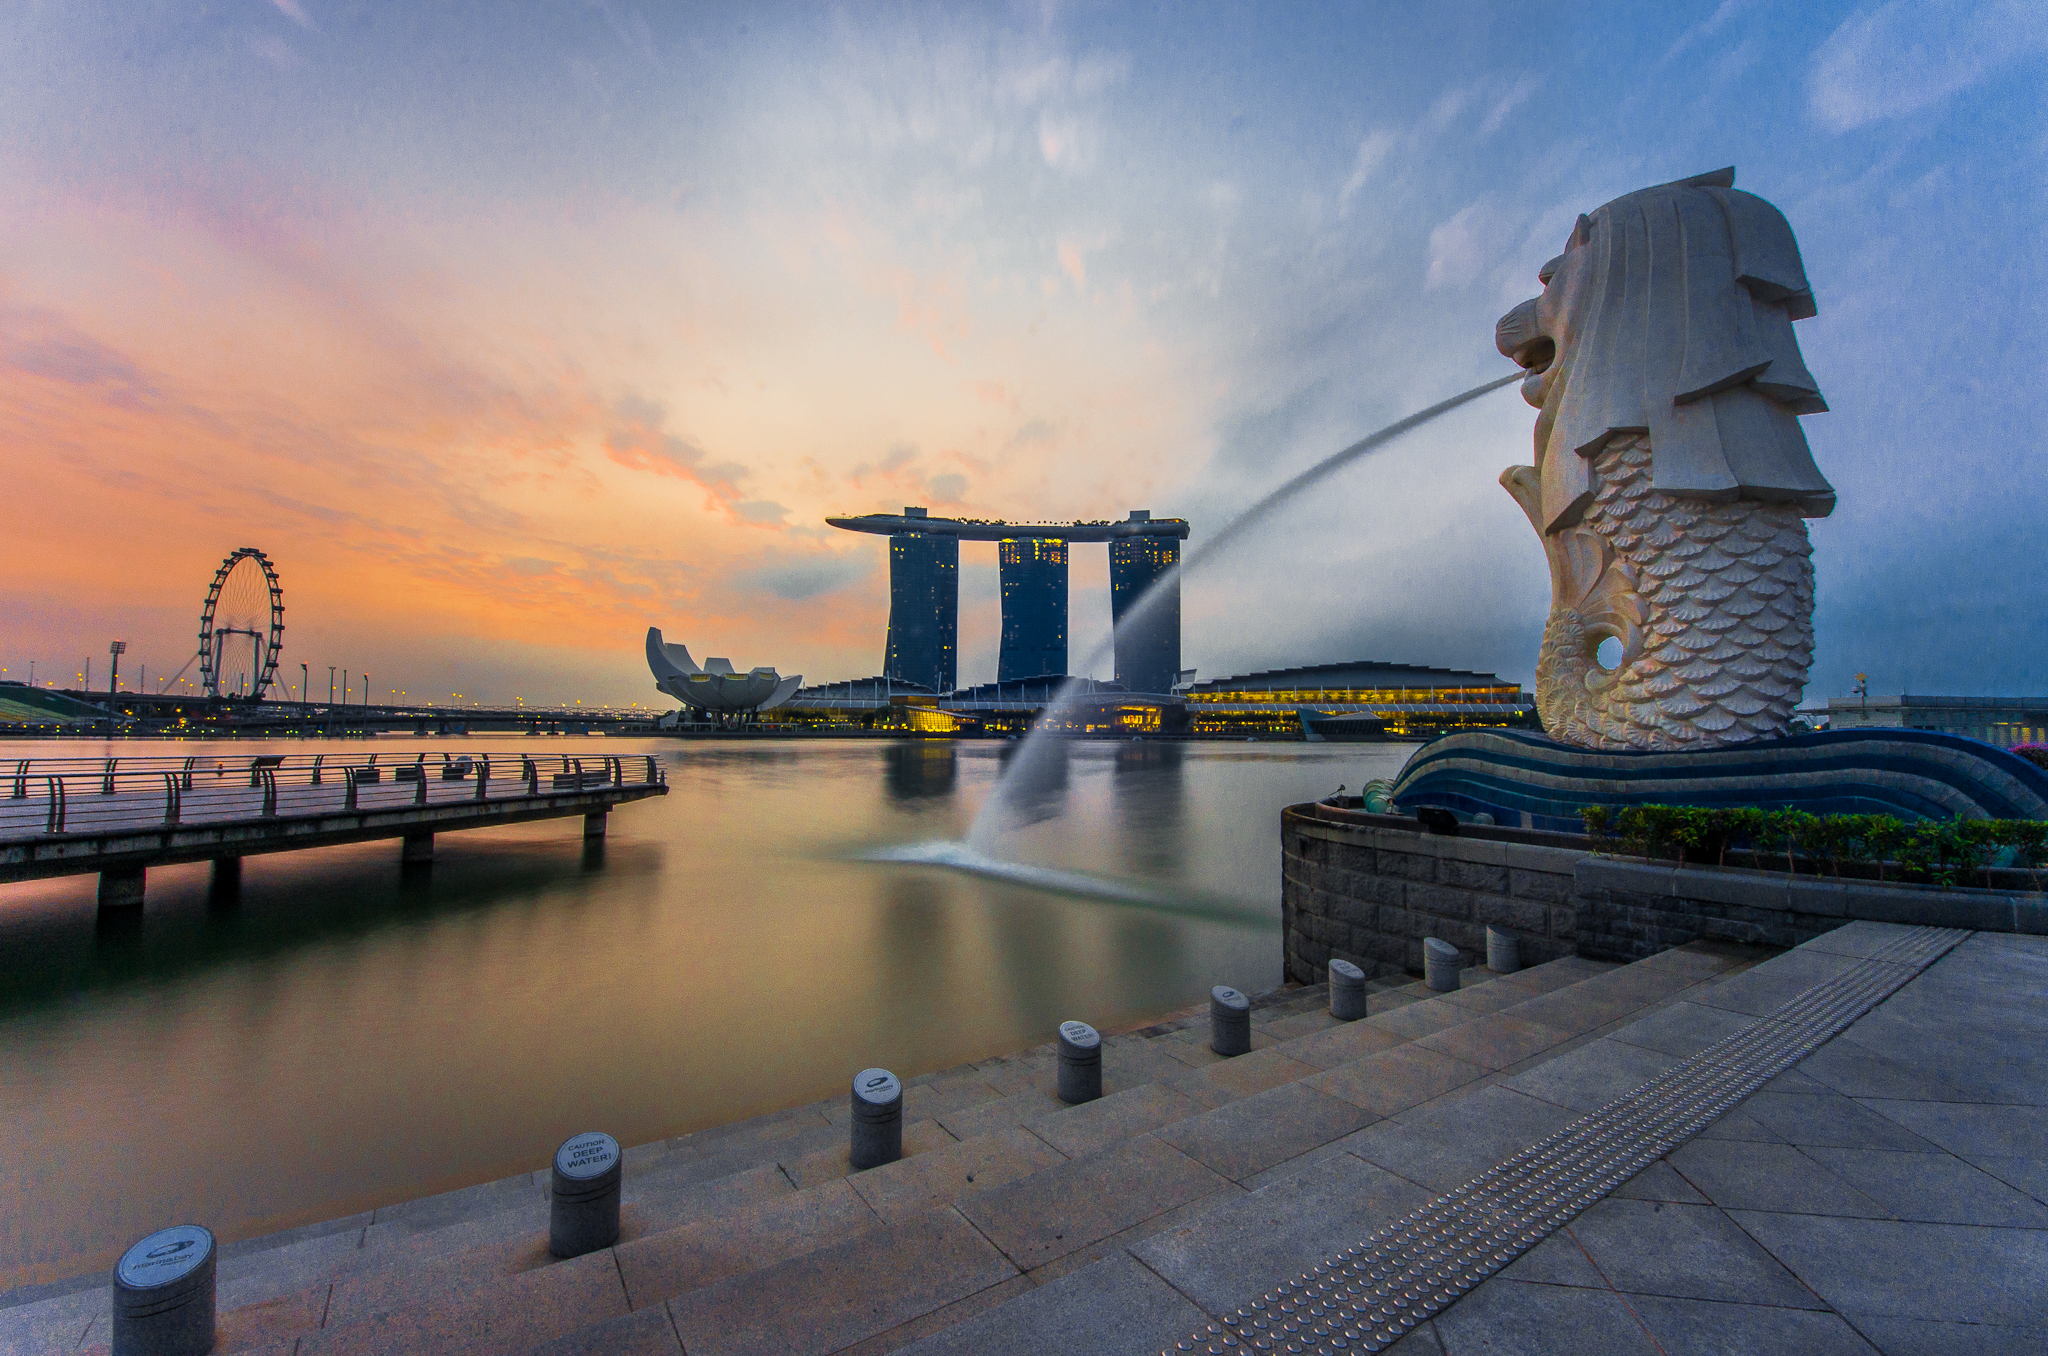 rear_view_of_the_merlion_statue_at_merlion_park_singapore_with_marina_bay_sands_in_the_distance_-_20140307